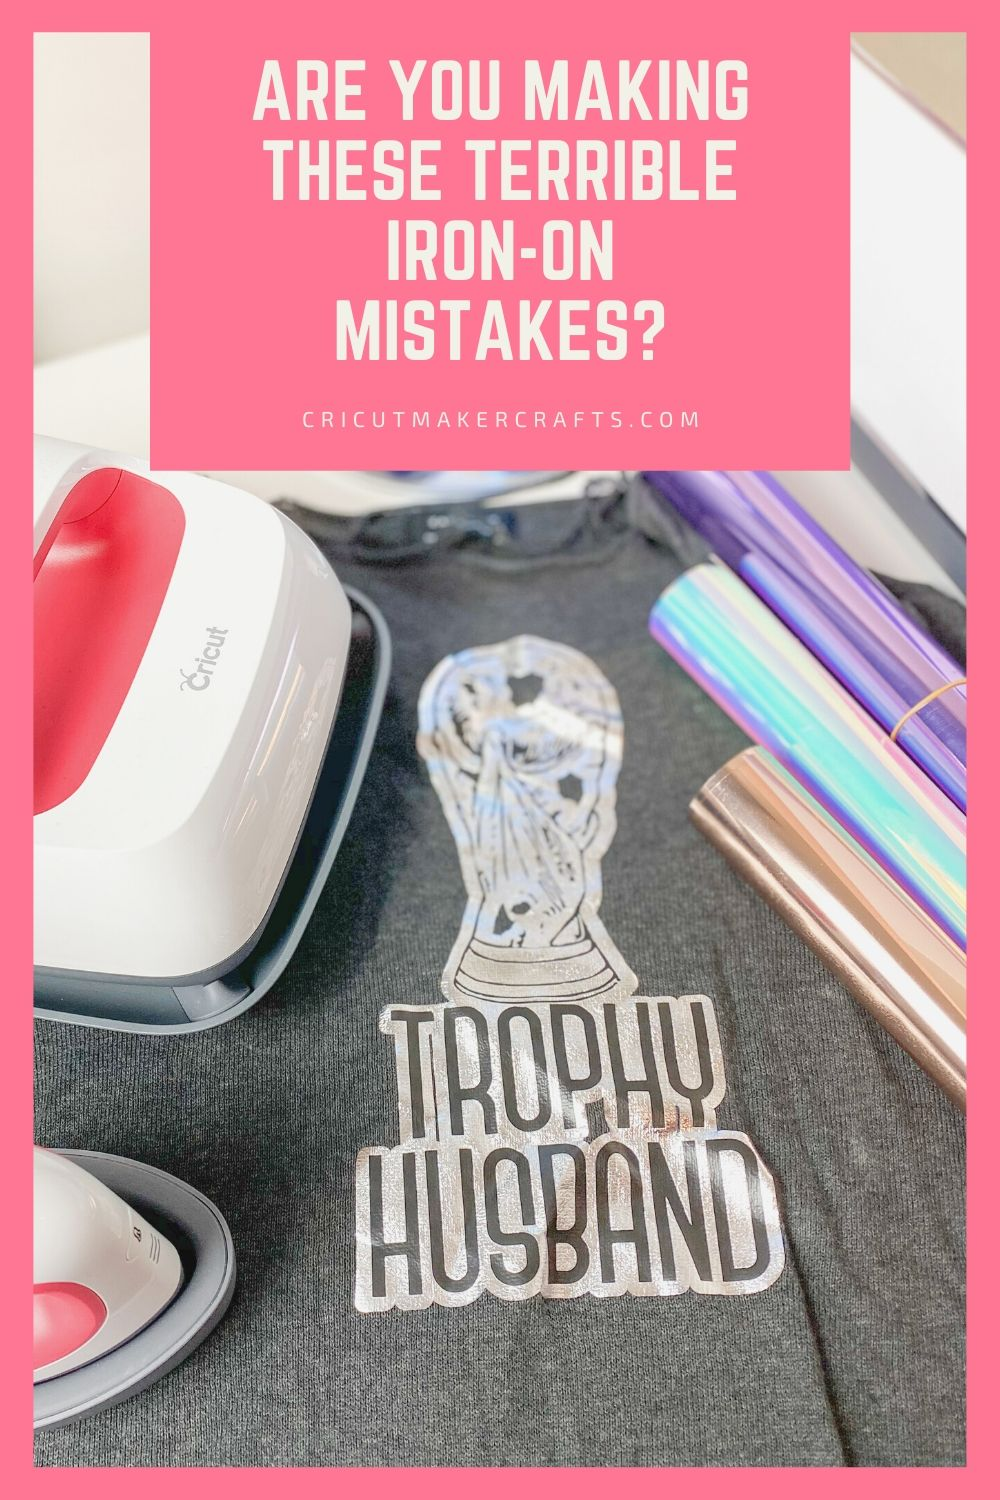 3 Iron-on vinyl with Cricut EasyPress and Iron-on shirt saying trophy husband